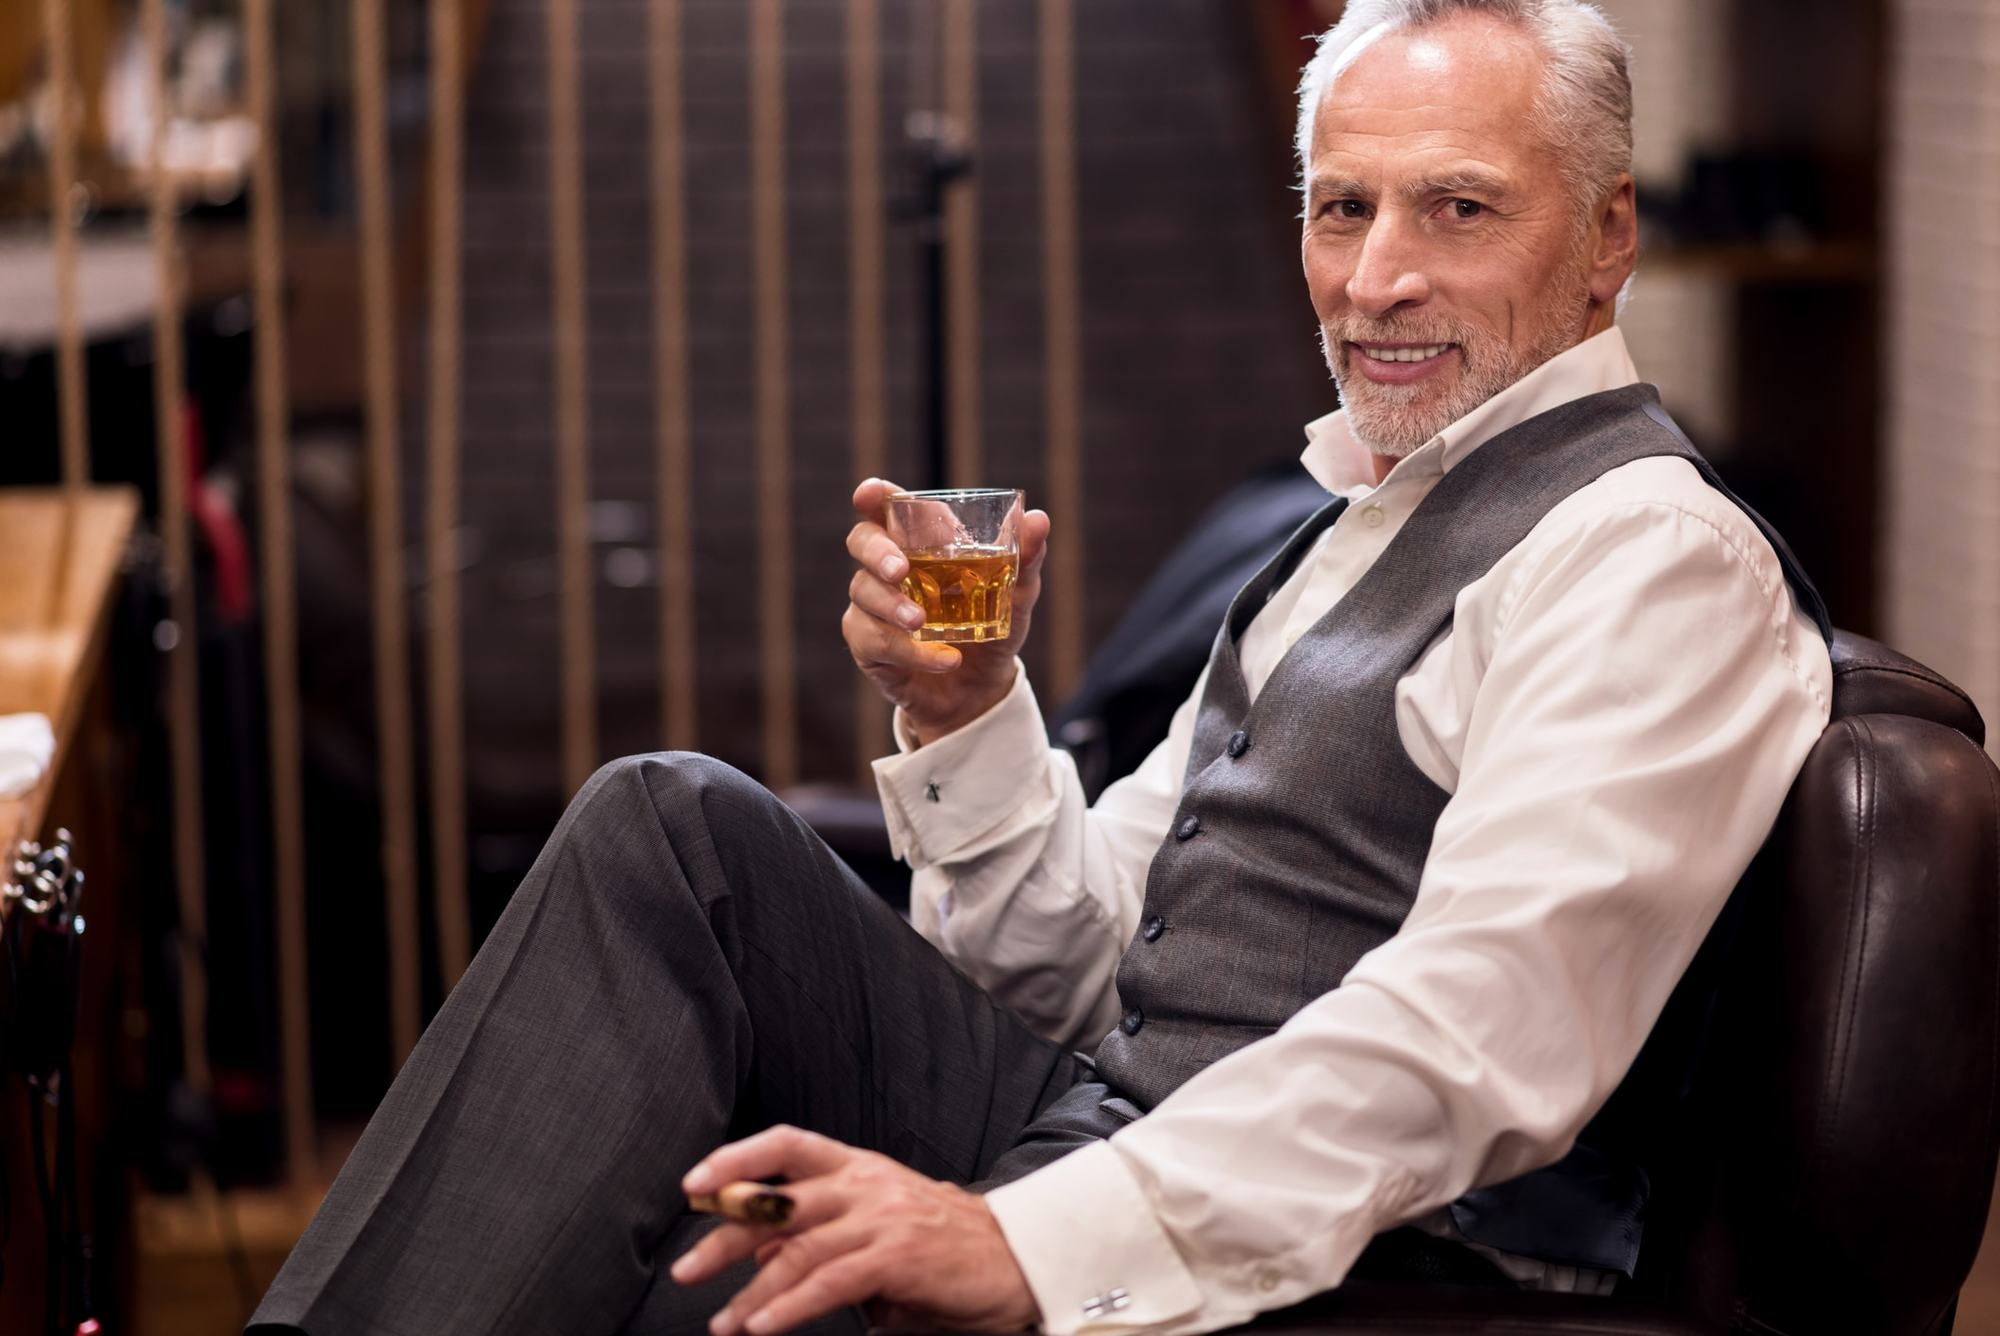 hairstyles for men over 50 styled